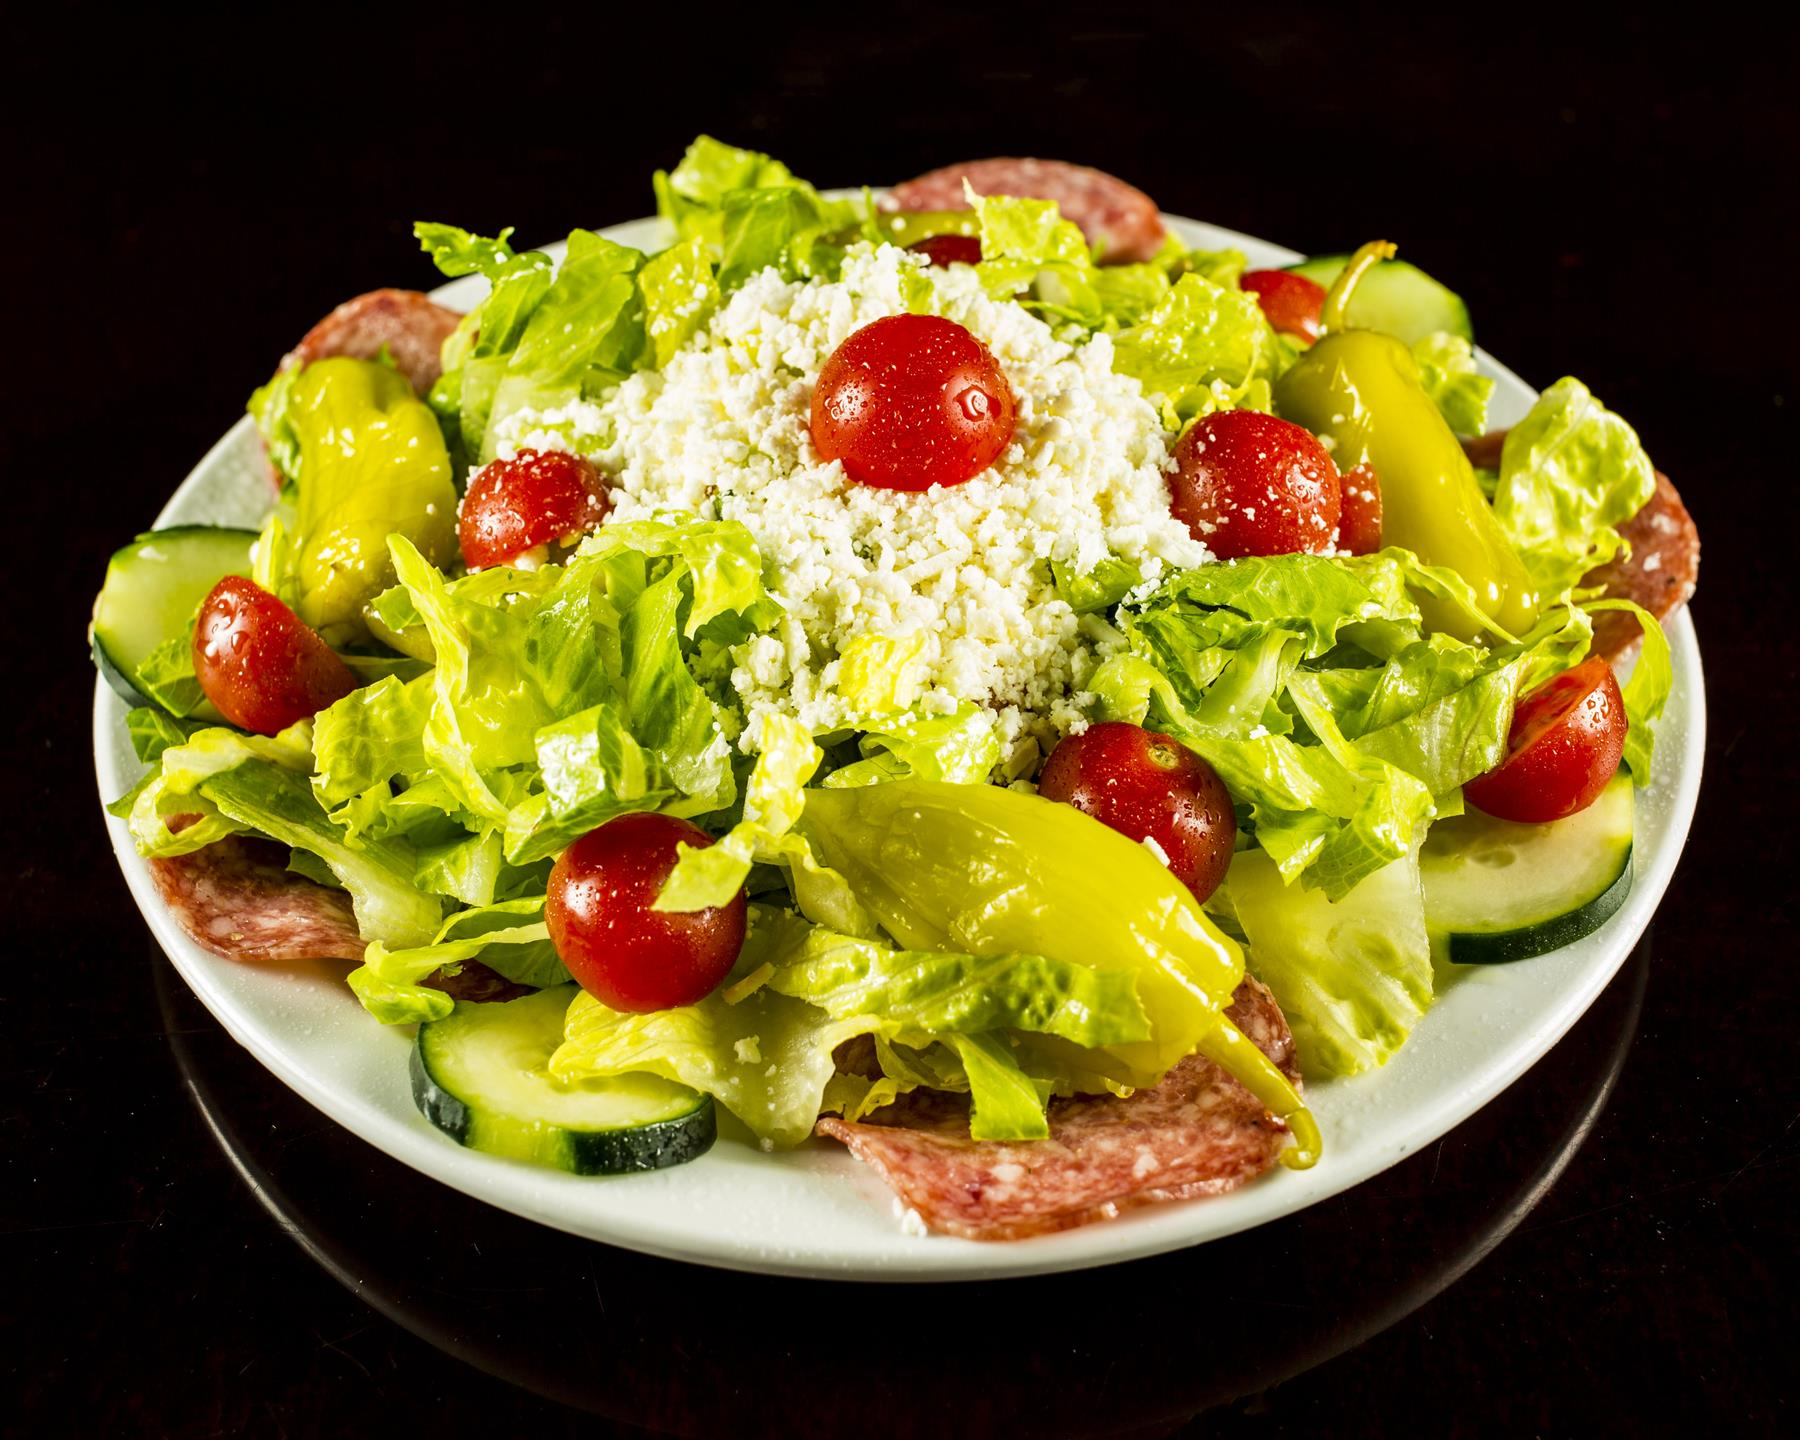 antipasto salad with green leaves, roma tomatoes, hearts of palm, greek olives, salami, ham, and mozzarella cheese